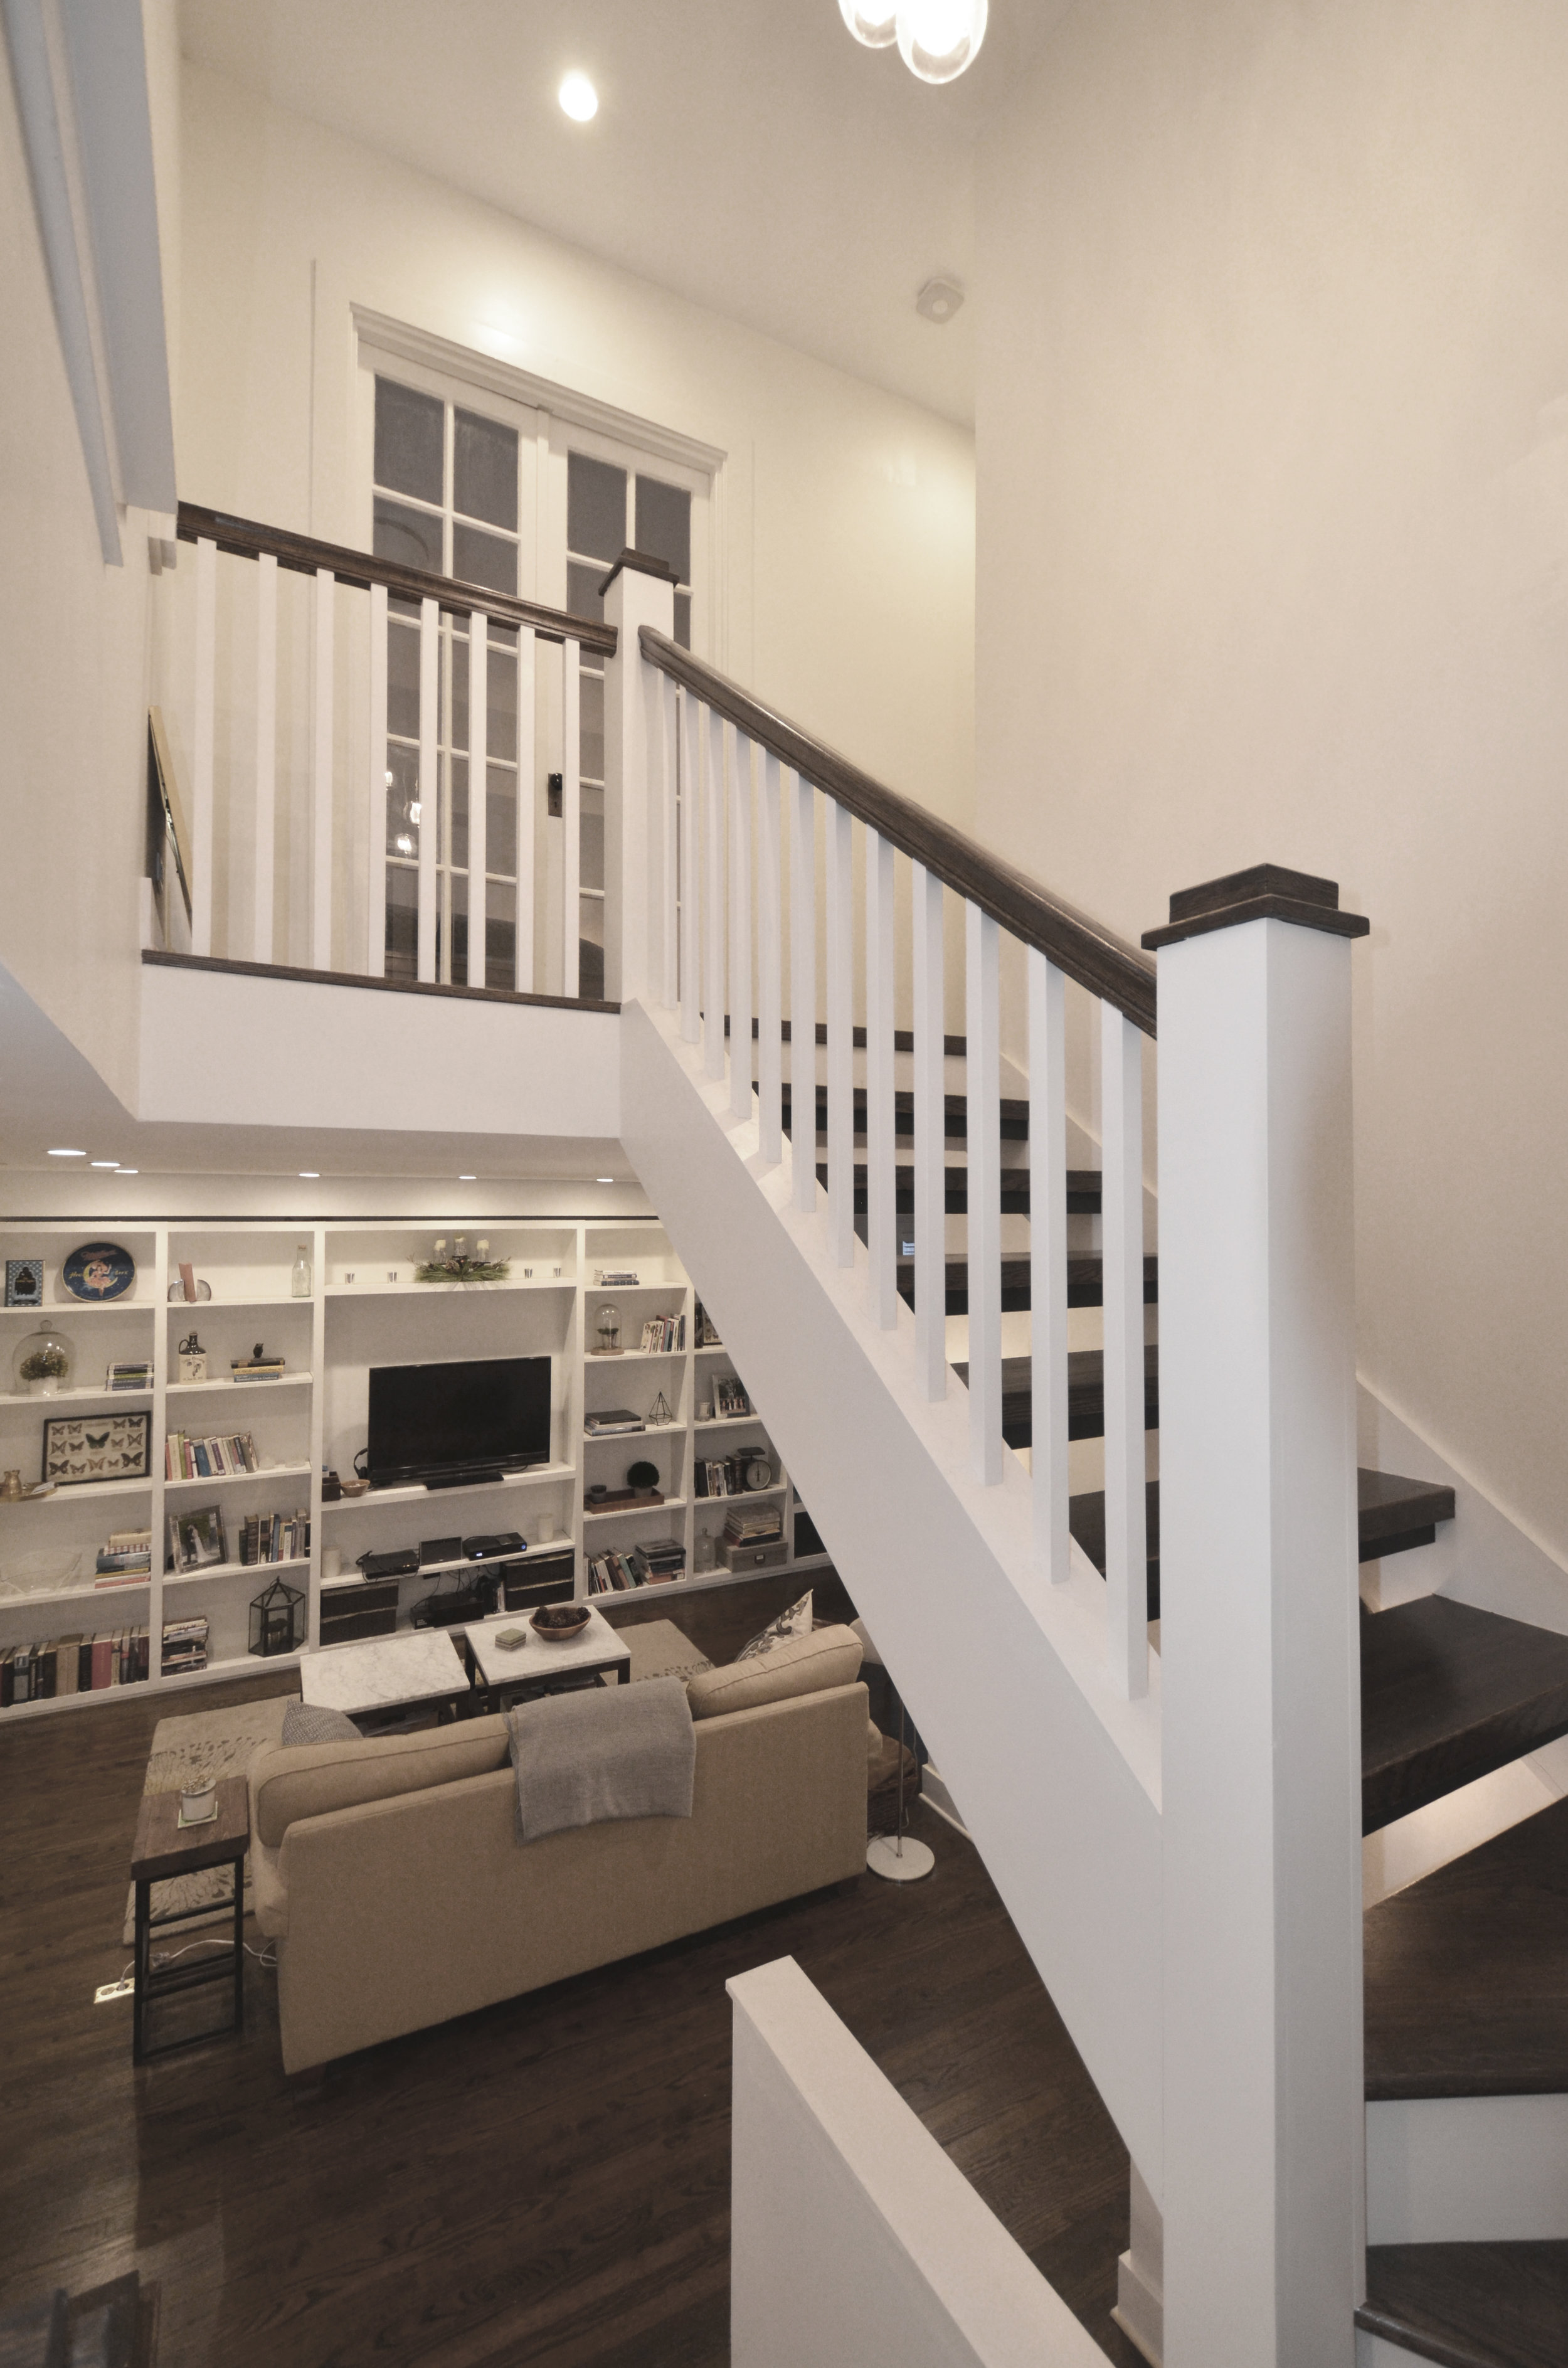 view of stair